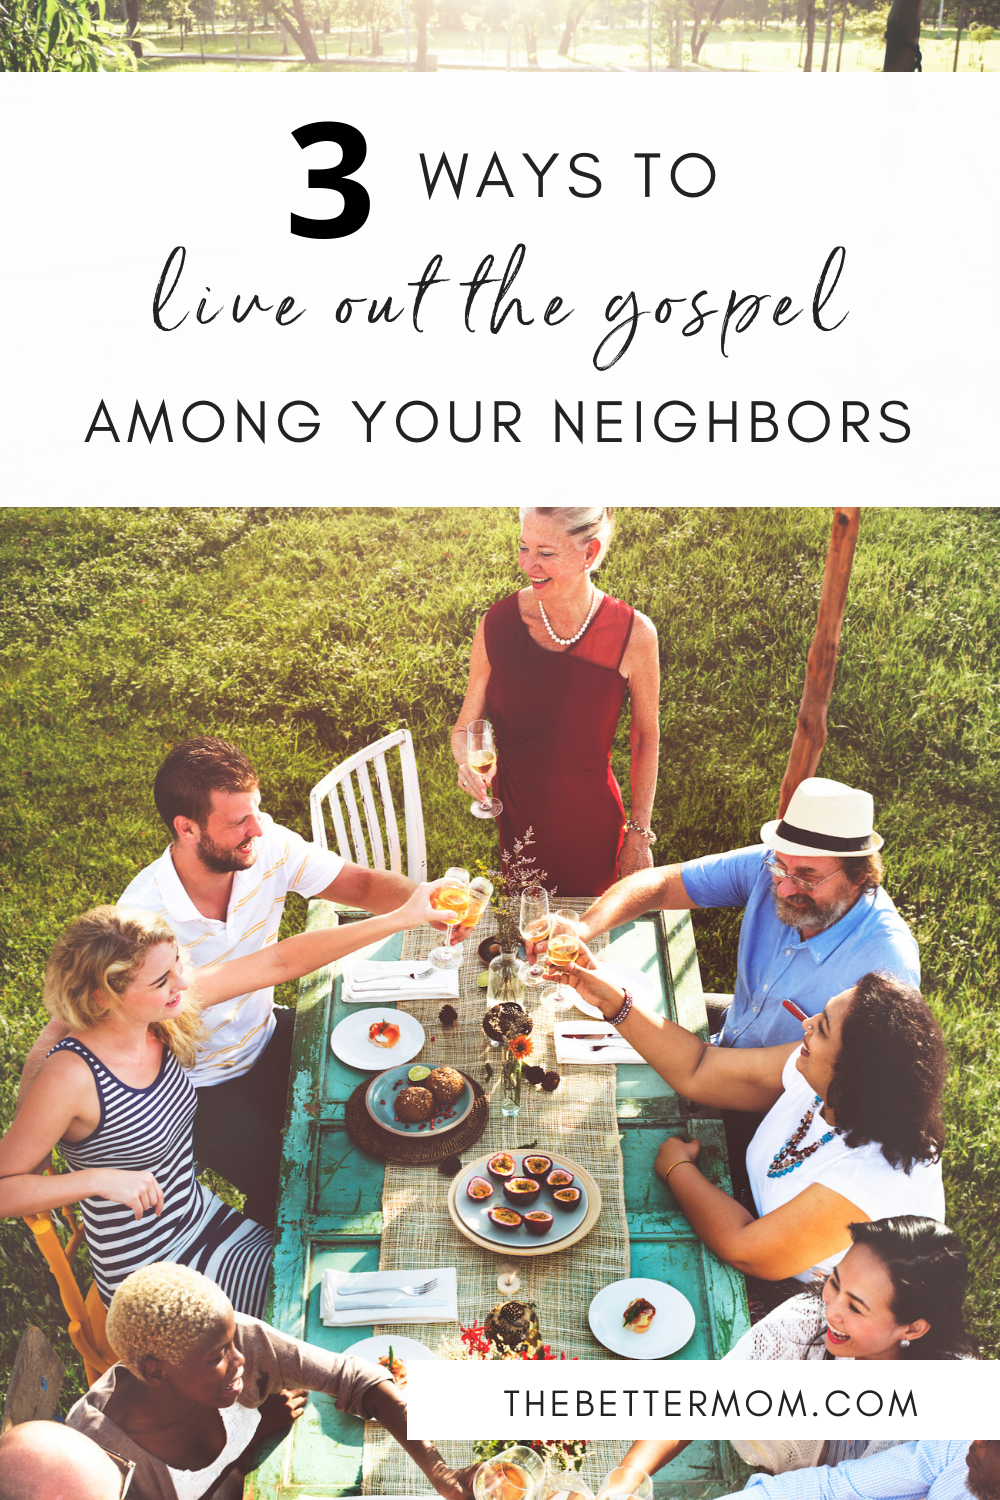 There is no better place to impact others with the love of Jesus than the place that He has planted you. That's why we're sharing our best ideas for how to love and care for your neighbors. Whether you're new to your neighborhood or have known your community for years, you can begin to love them well today.